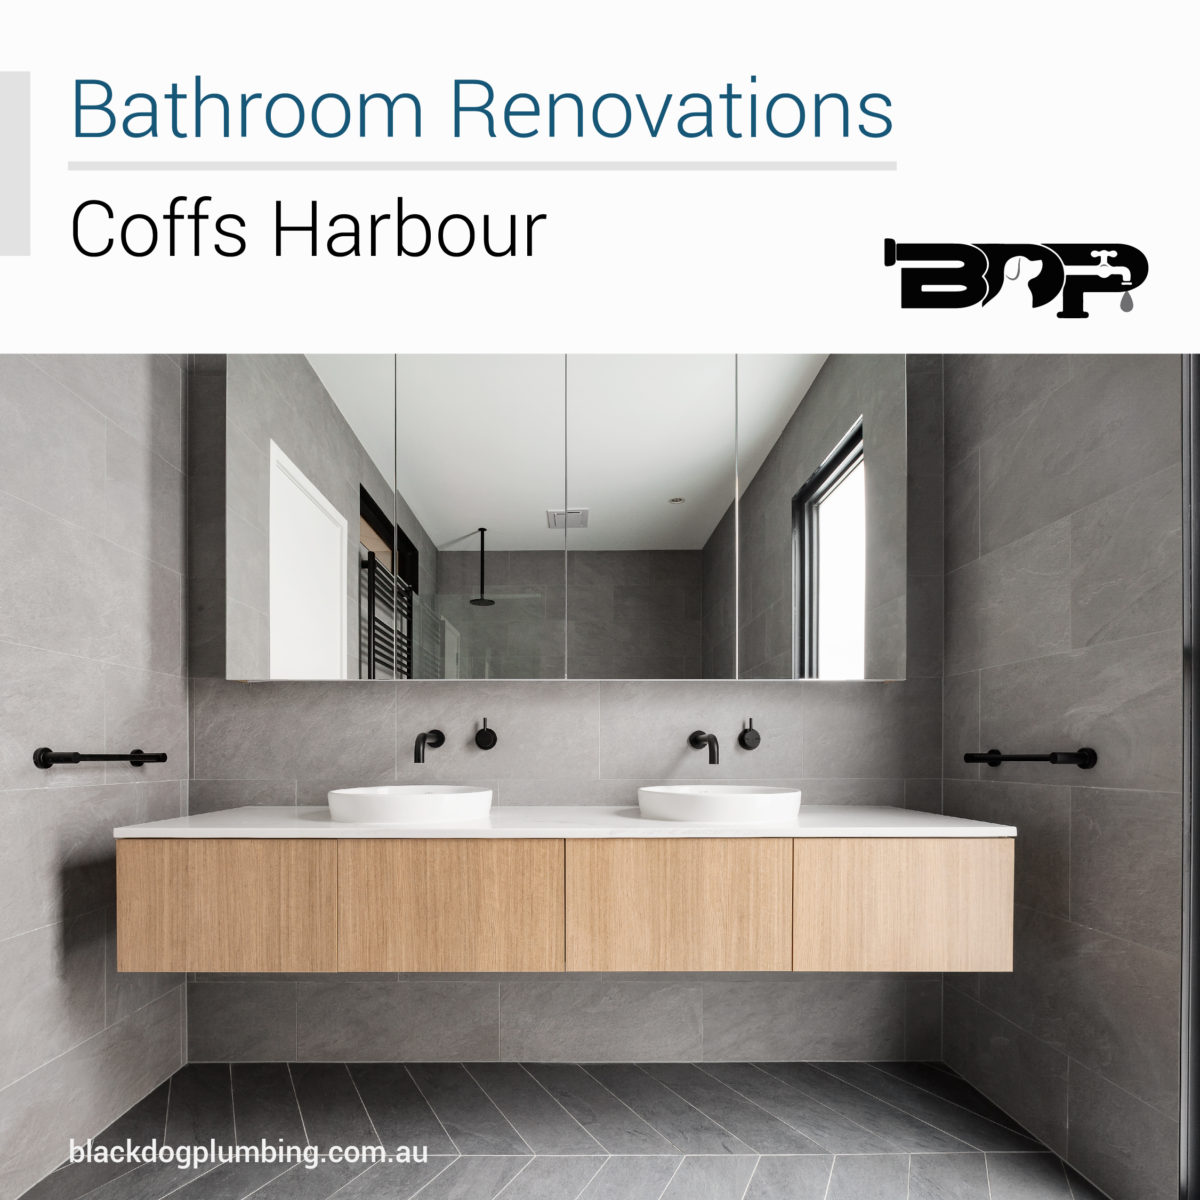 in Coffs Harbour bathroom renovations